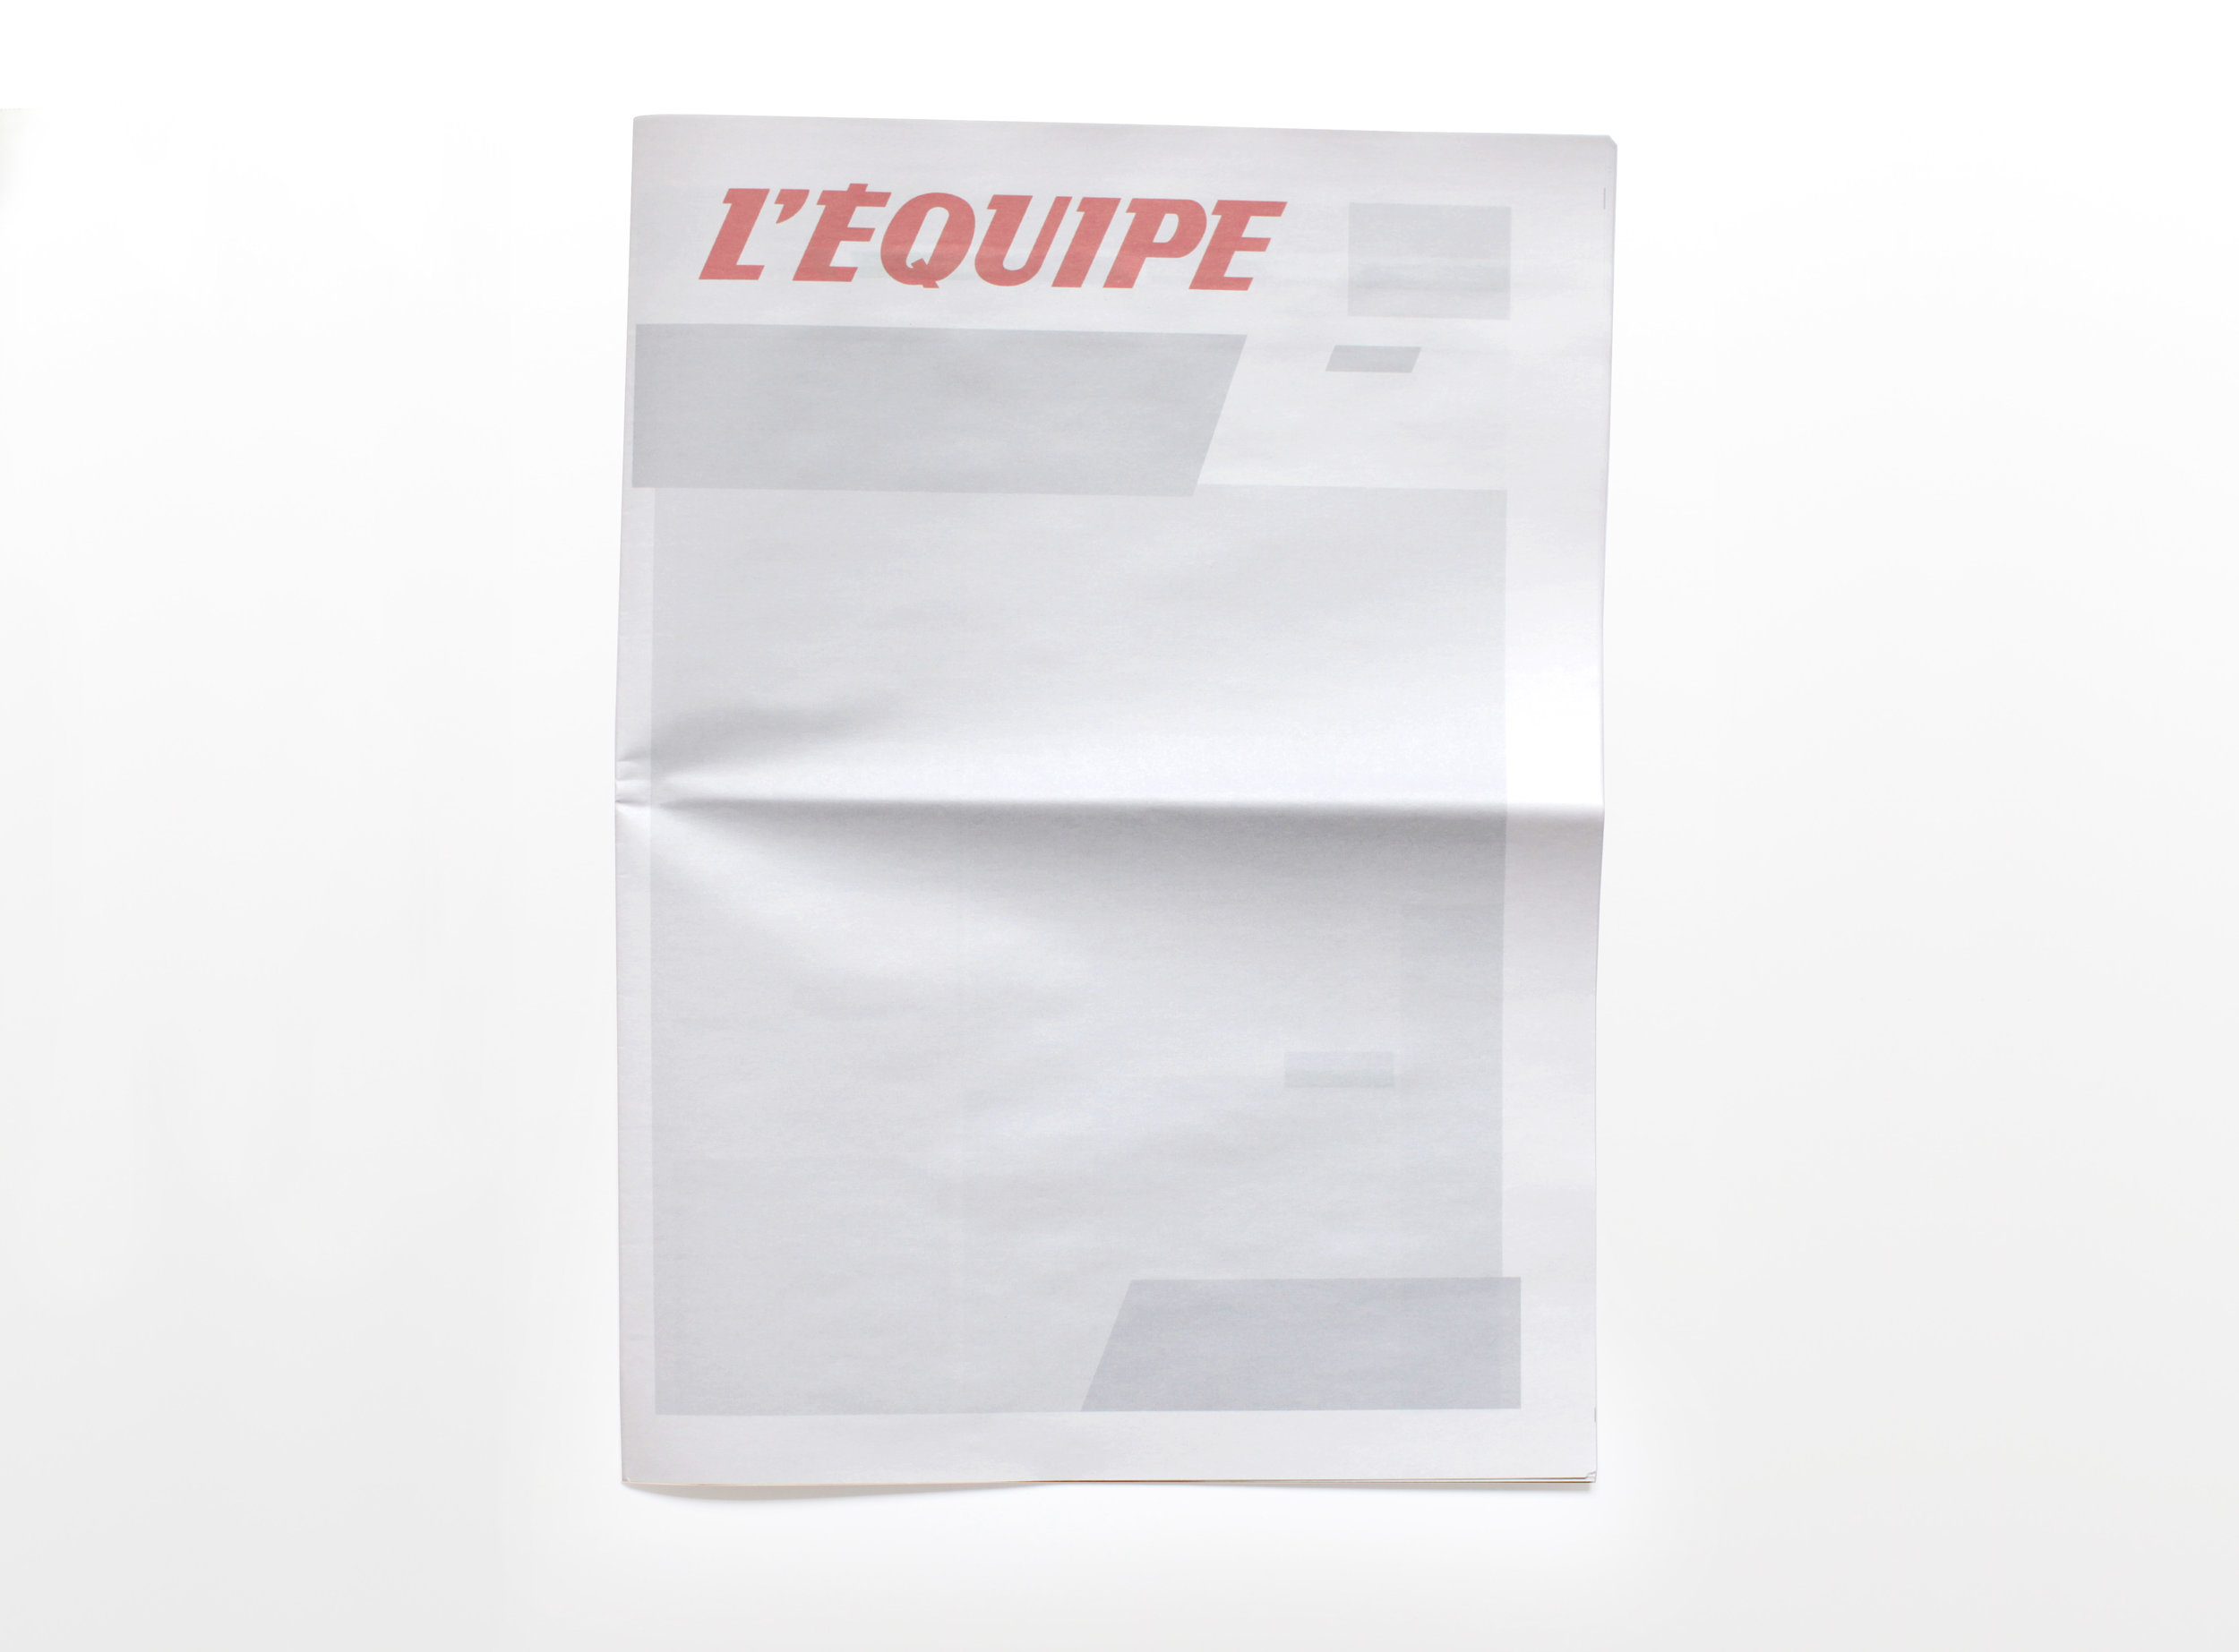 NOTHING IN L'EQUIPE : Newspapers from around the world with nothing in them.